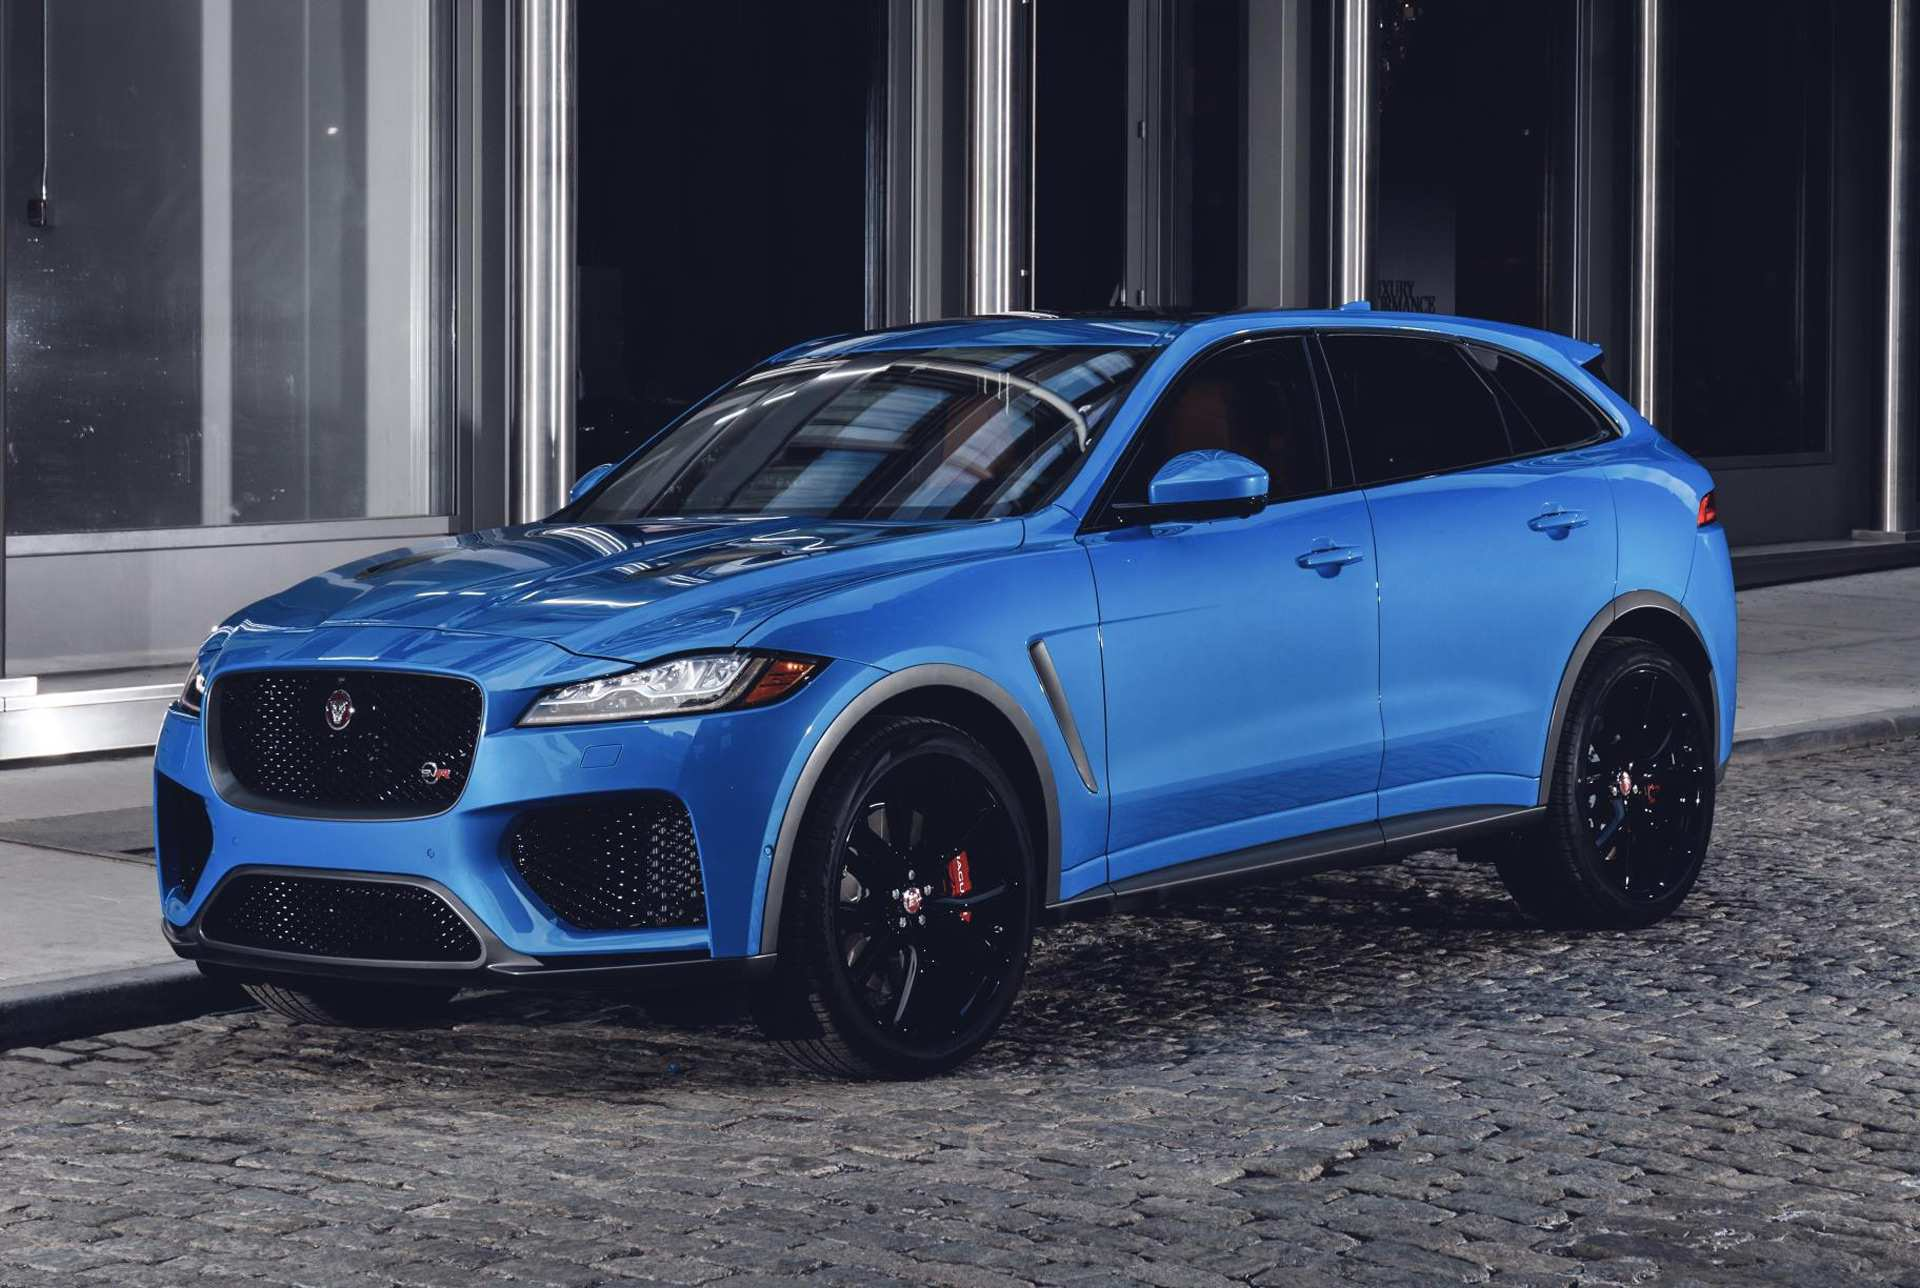 88 Best Review 2019 Jaguar F Pace Svr Price Price History for 2019 Jaguar F Pace Svr Price Price